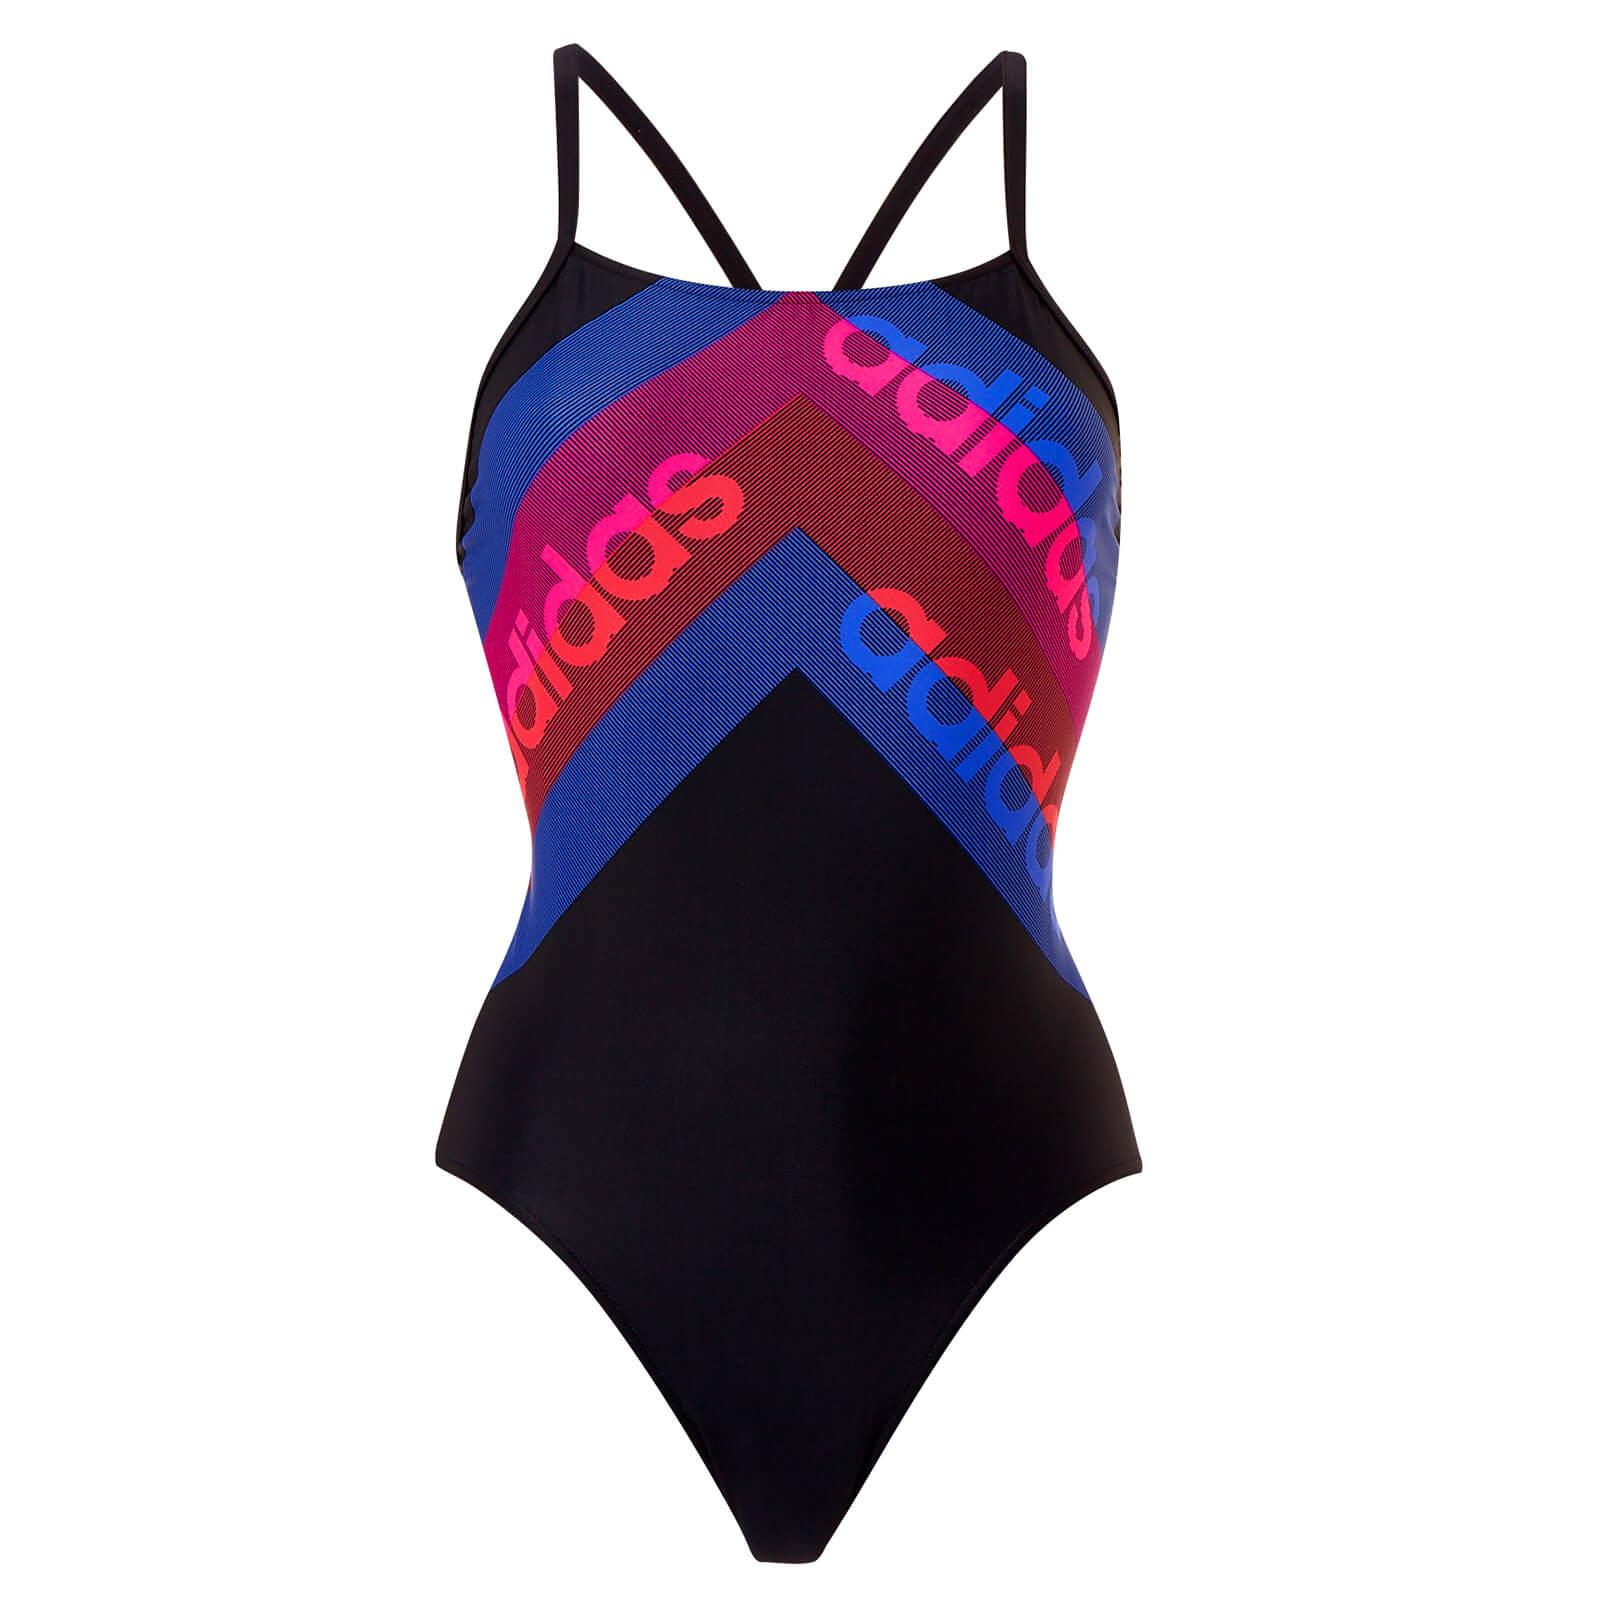 78402c65ed0e2 Lyst - adidas Fit 1 Piece Line Print Swimsuit in Blue - Save 41%